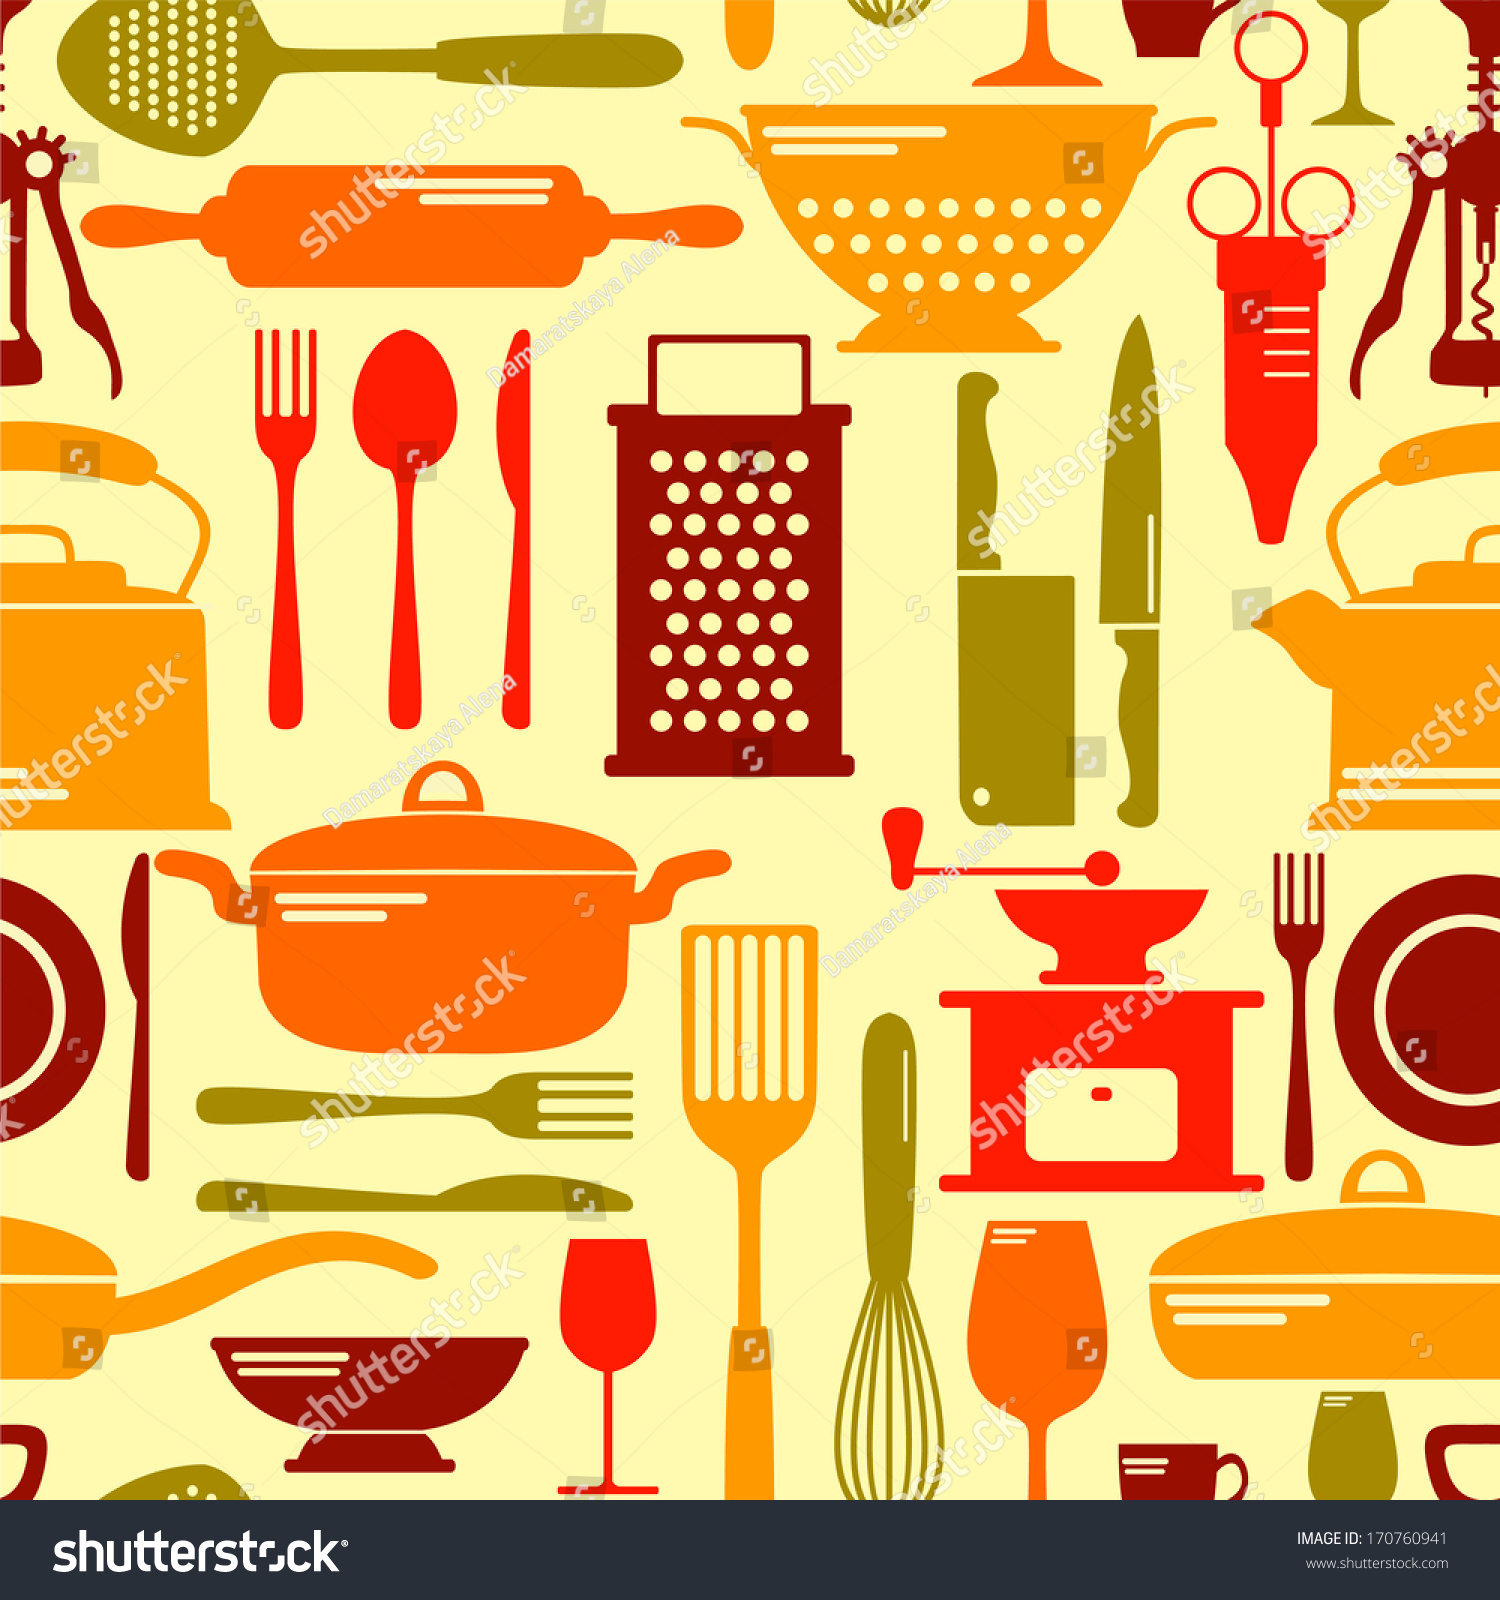 Customizable kitchen wallpaper idea